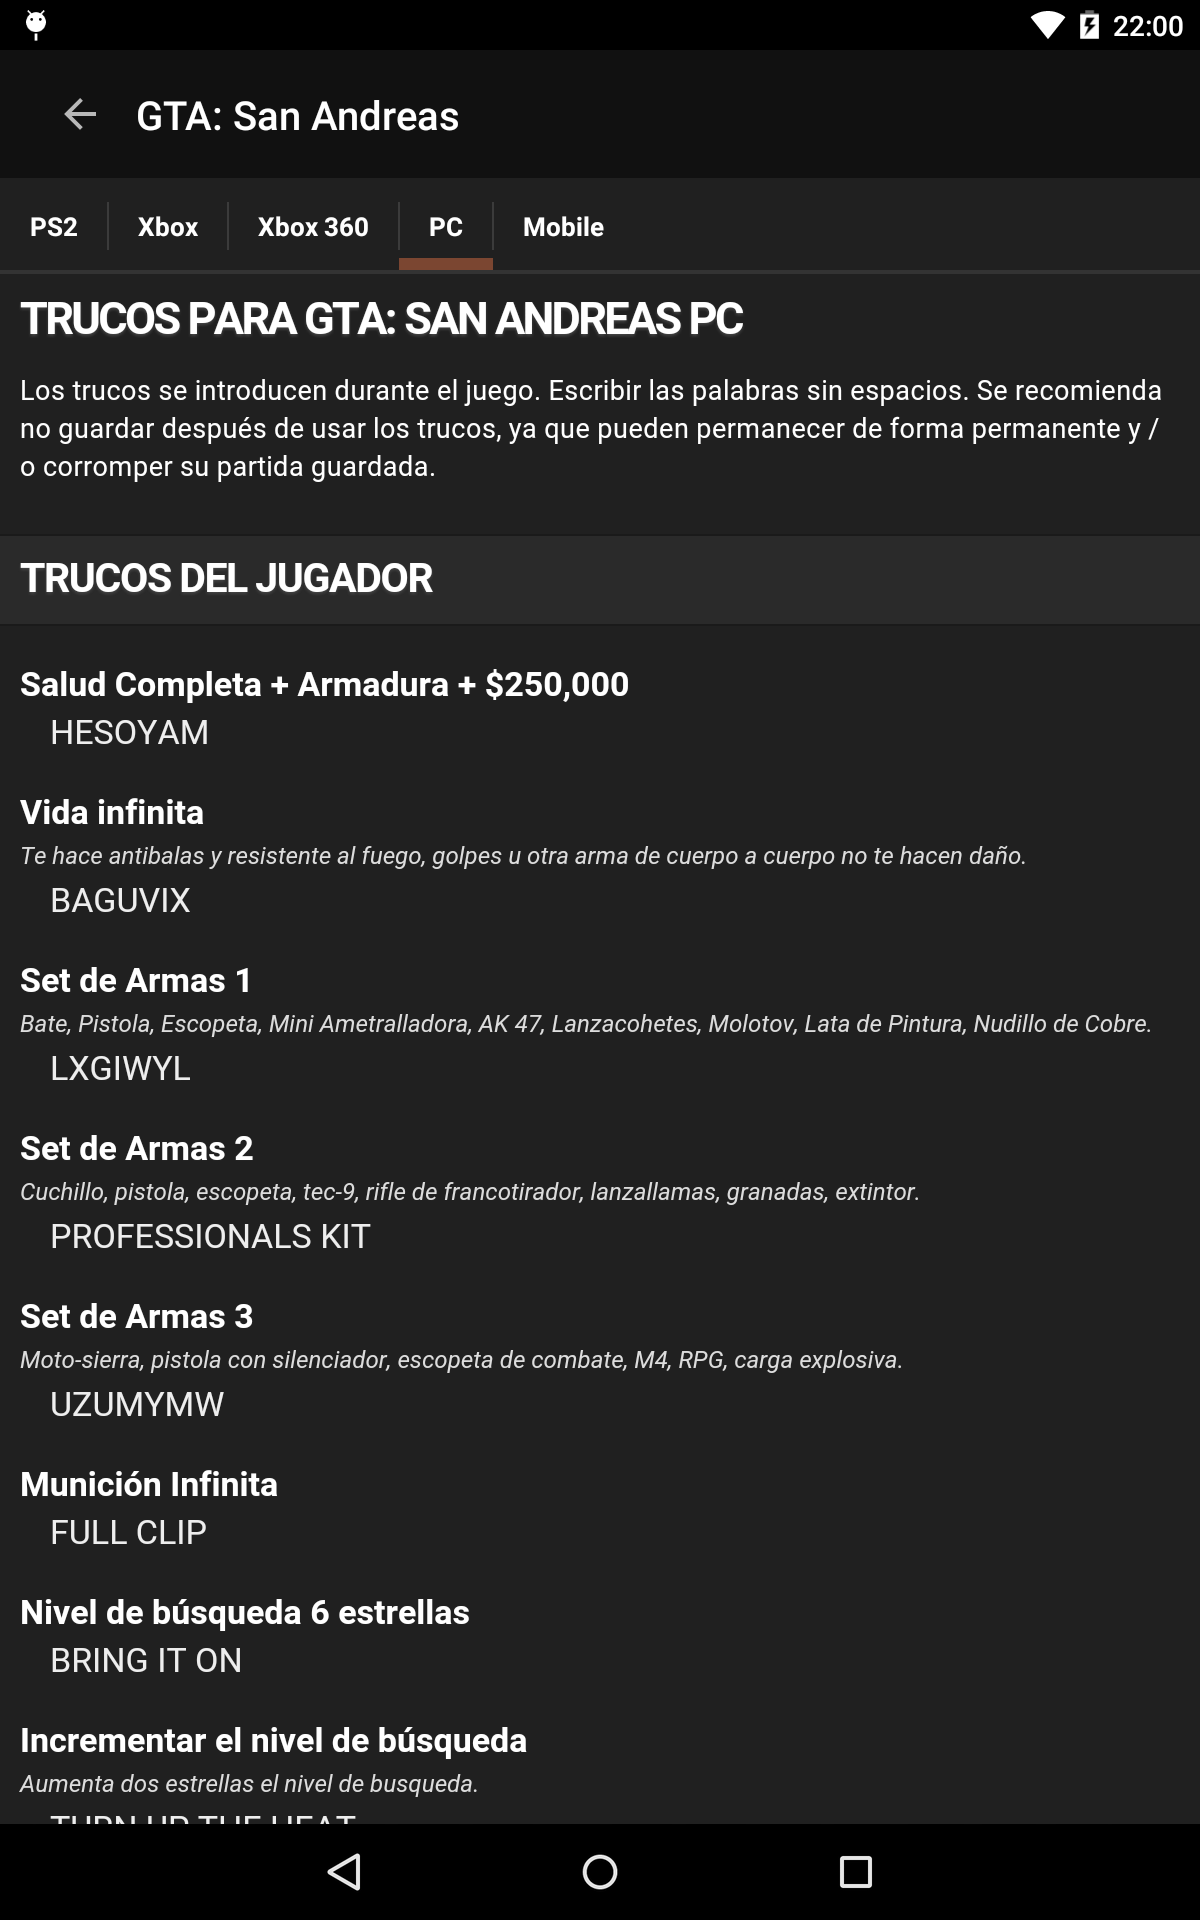 Cheats for GTA - Trucos para todos los juegos de Grand Theft Auto: Amazon.es: Appstore para Android